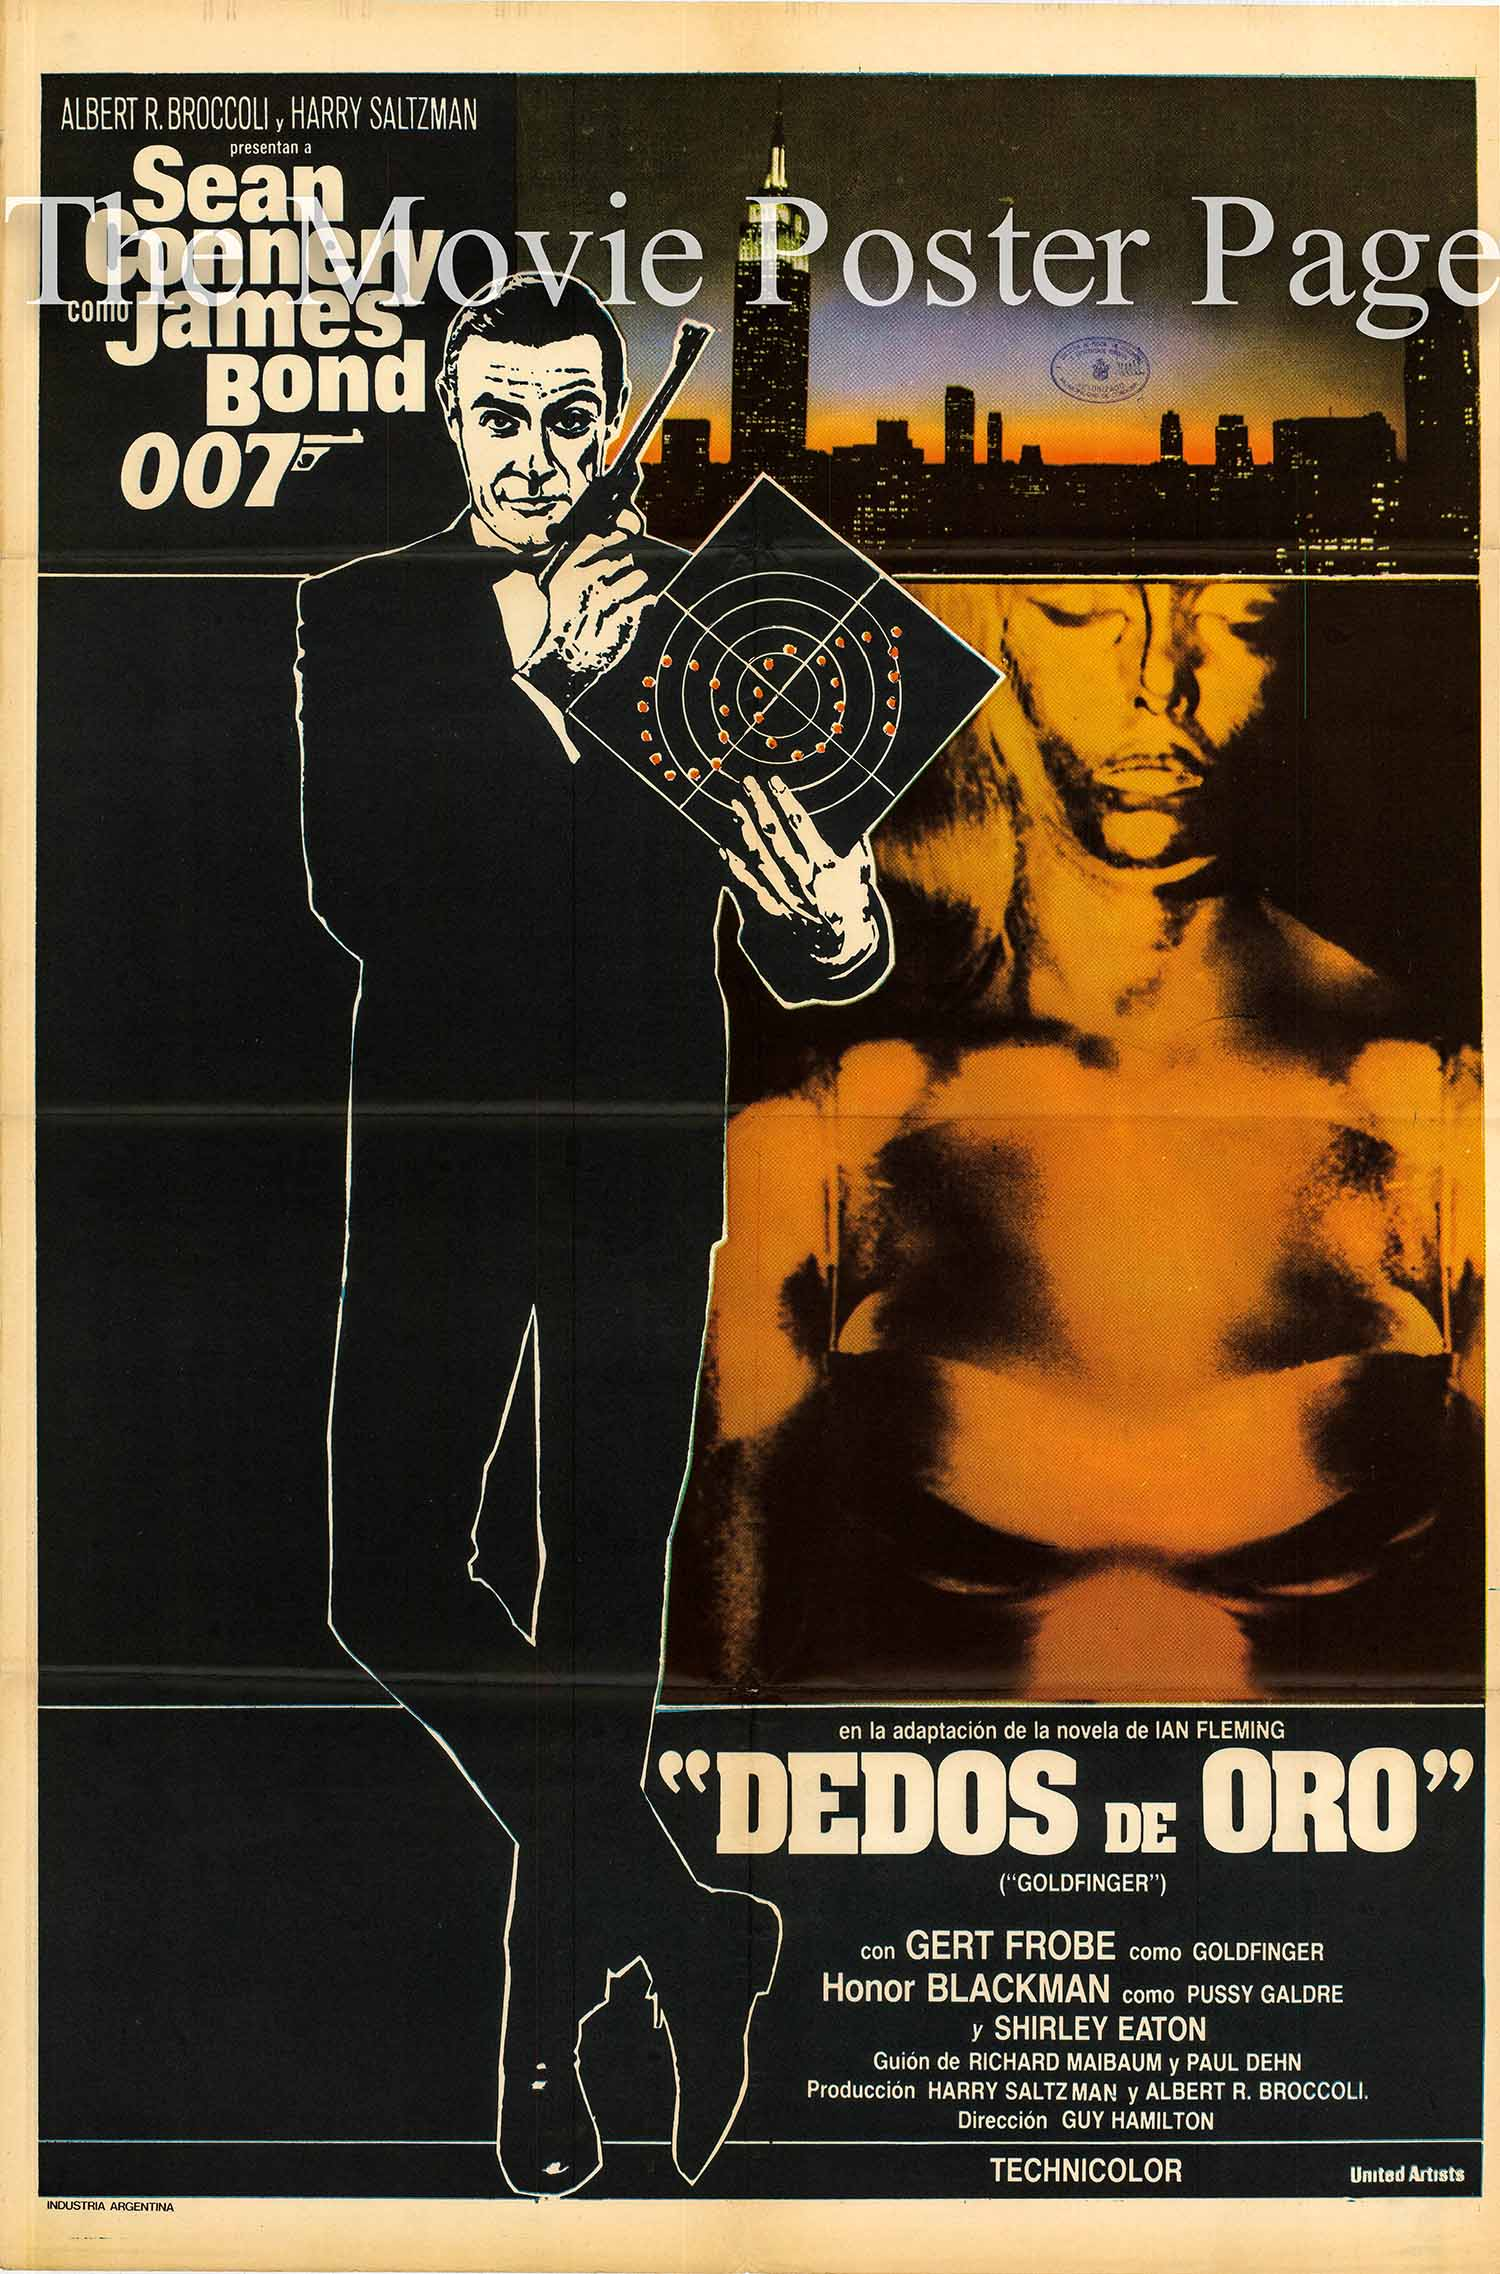 Pictured is an Argentine promotional poster made for the 1964 Guy Hamilton film Goldfinger starring Sean Connery as James Bond.